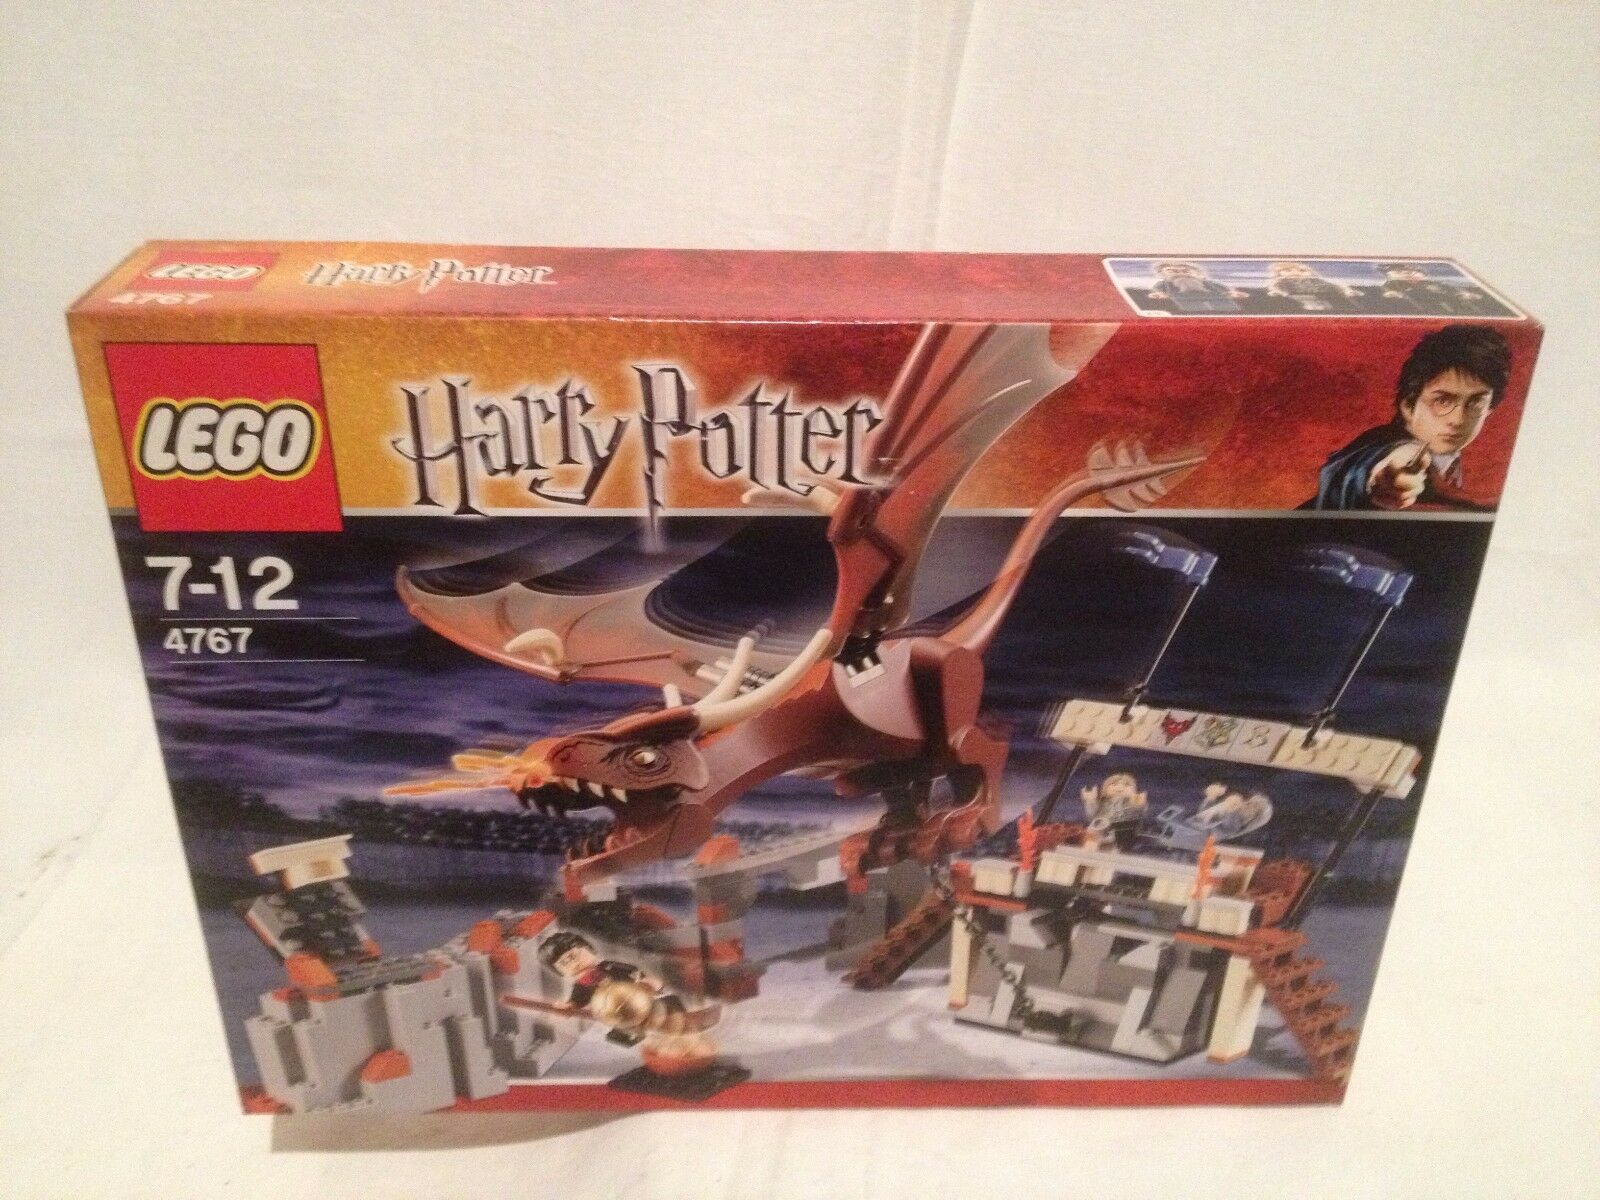 Lego Harry Potter 4767 Hungarian Horntail  NEUF 1 édition